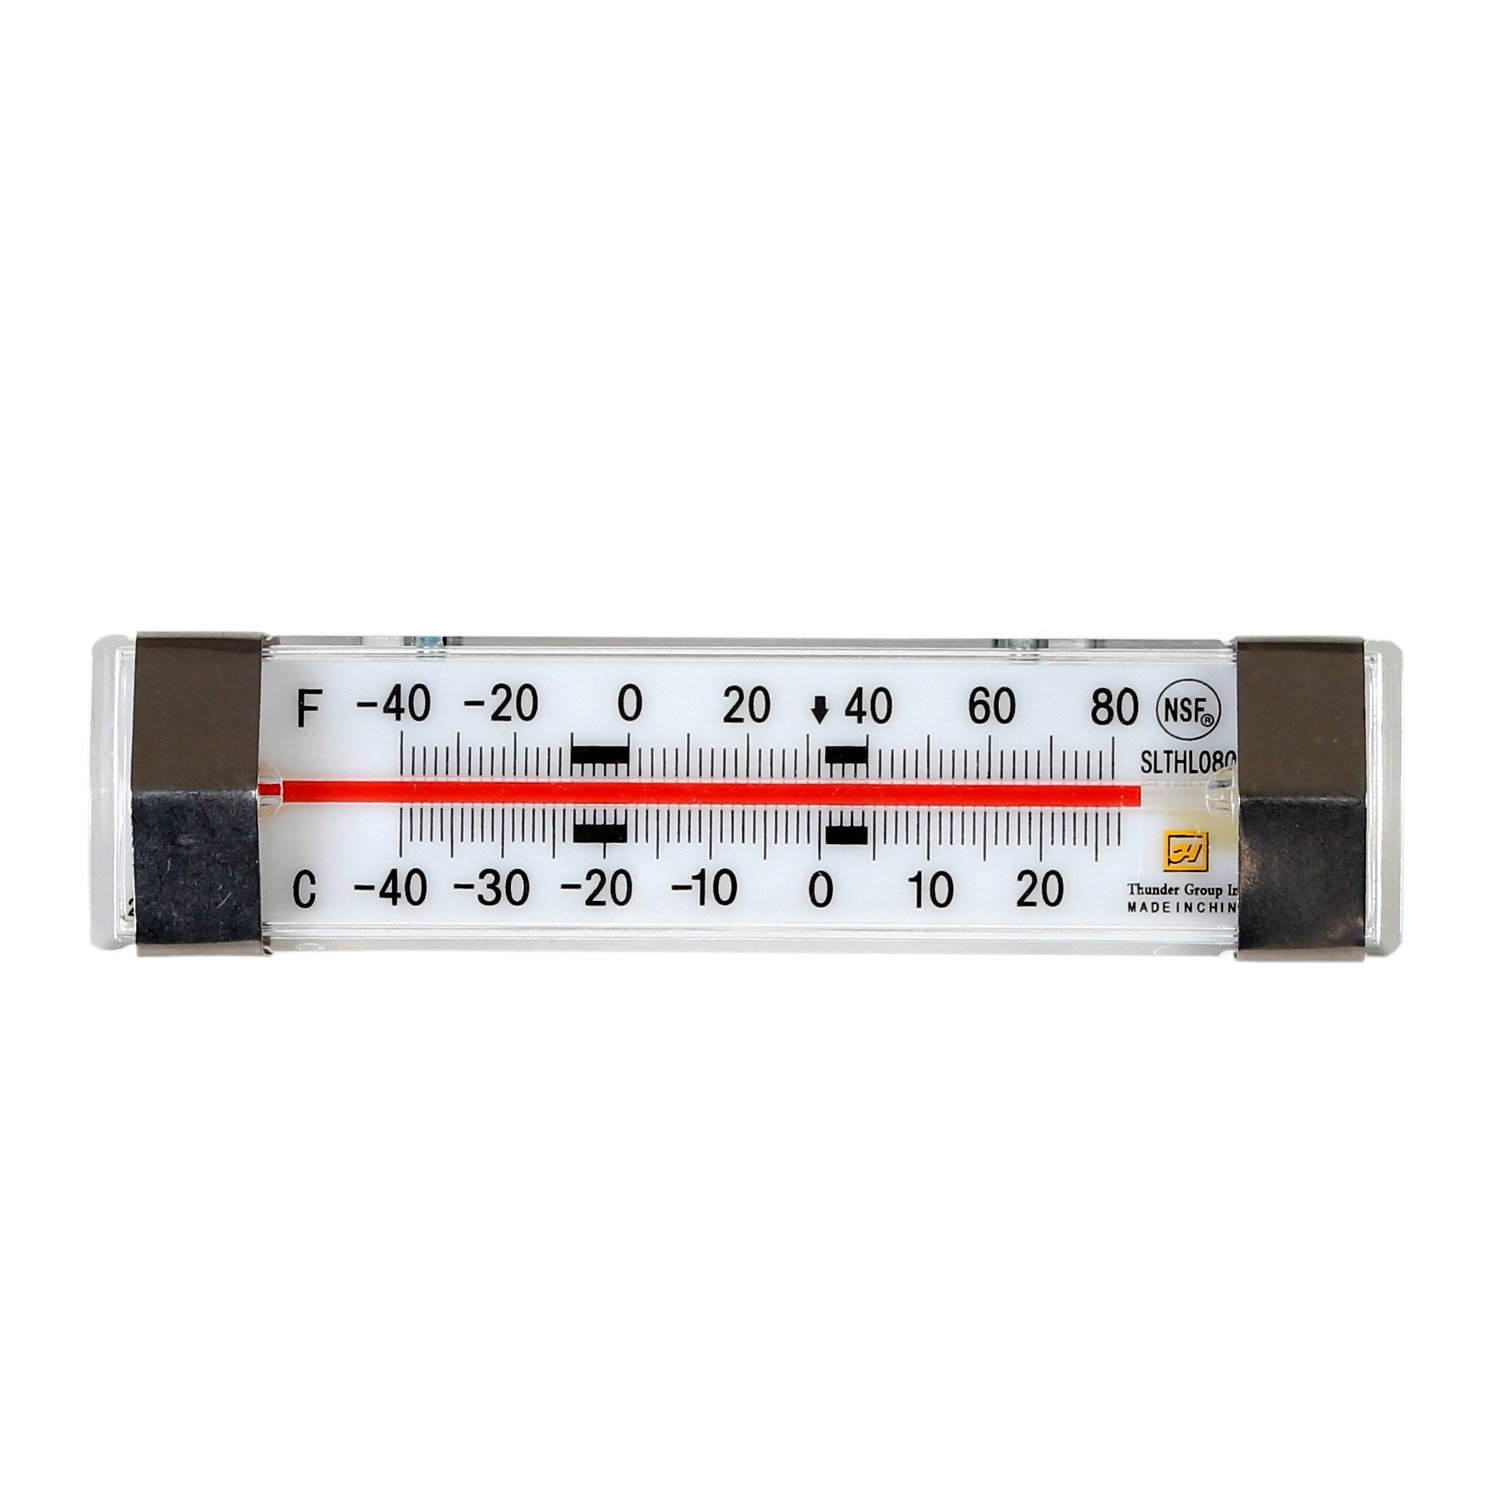 Excellante Horizontal Liquid Scale Thermometer, -40 to 80 Degrees Fahrenheit